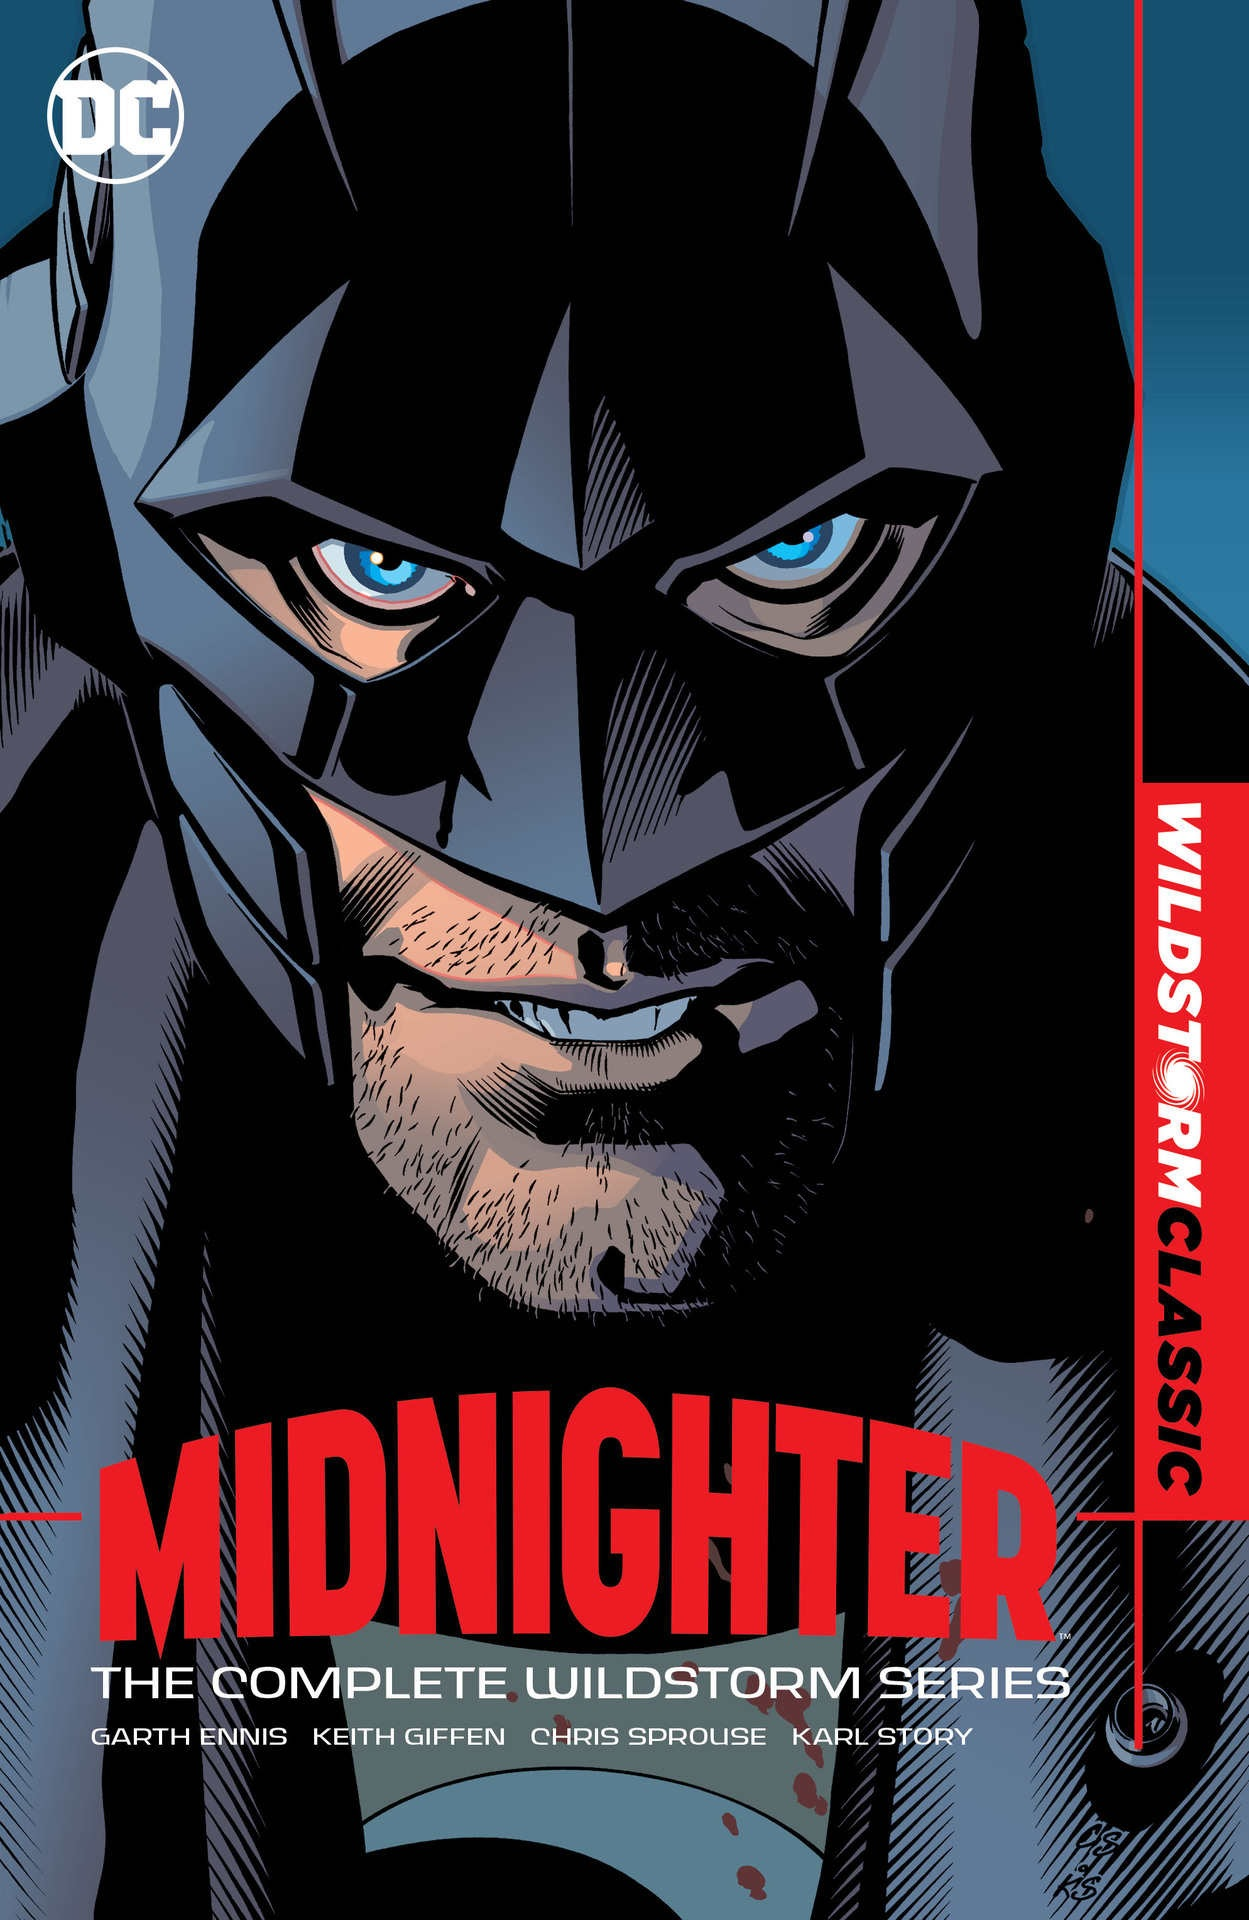 Midnighter: The Complete Wildstorm Series Boek omslag